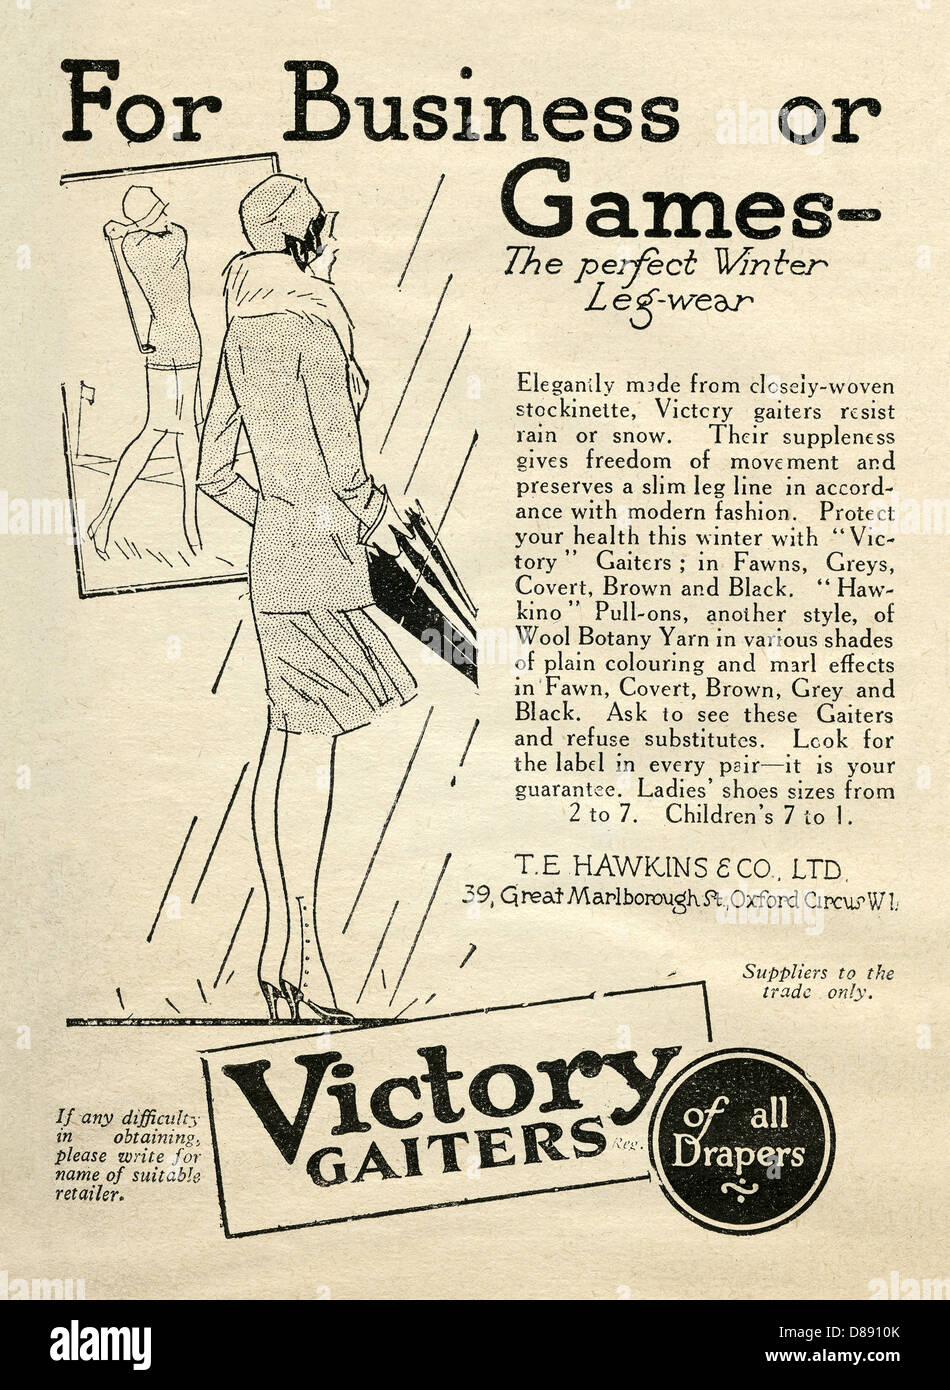 1928 advert for Victory gaiters or rain and snow-proof lower leg protectors - the illustration is of a lady wearing - Stock Image